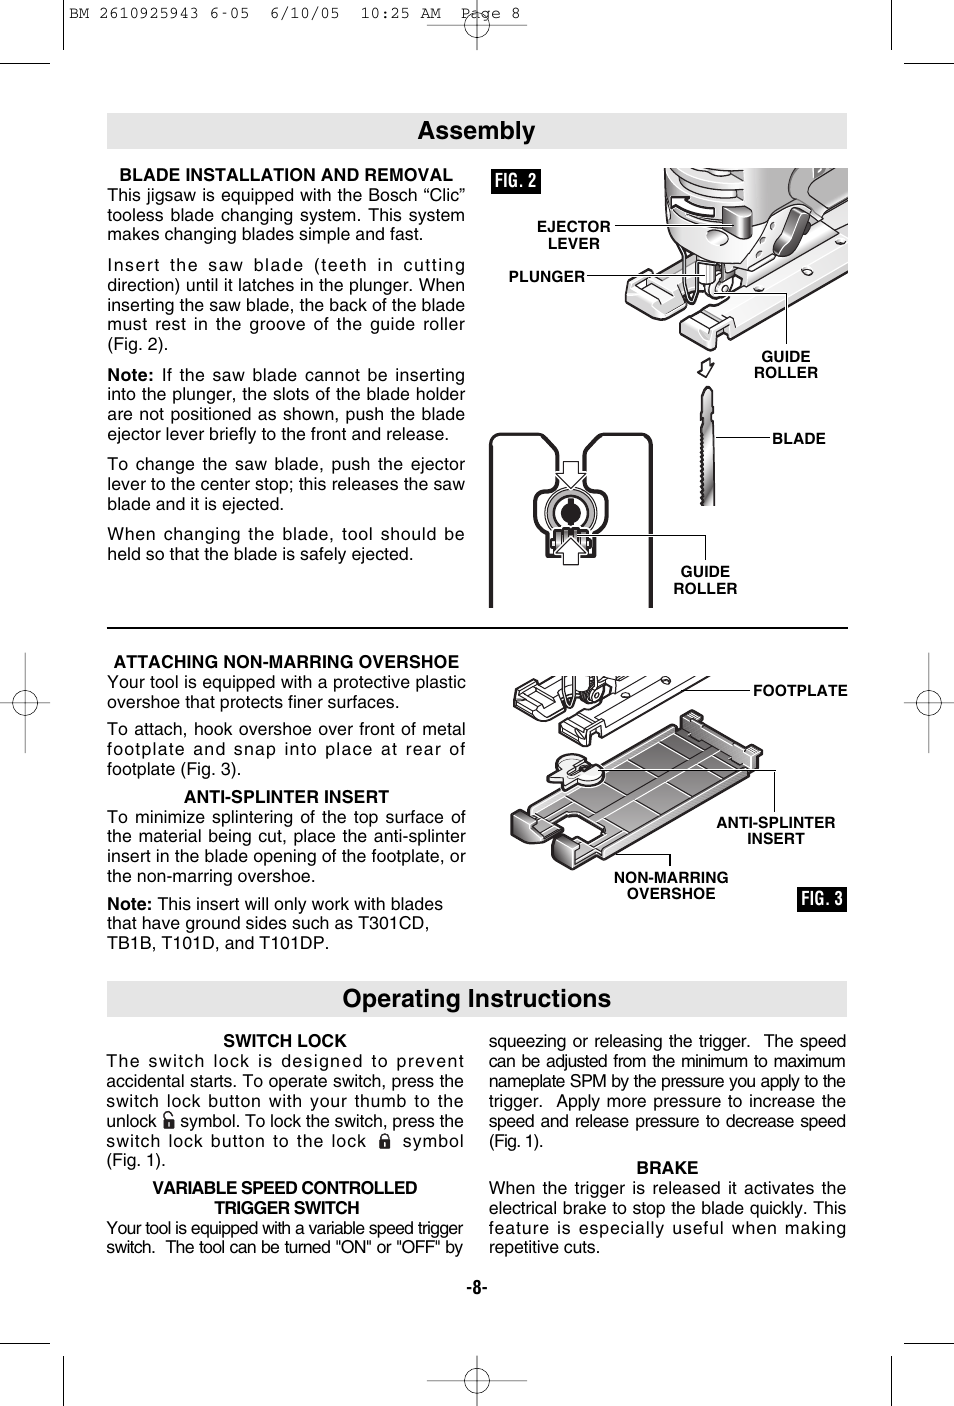 Operating instructions assembly bosch 52318 user manual page 8 44 greentooth Gallery